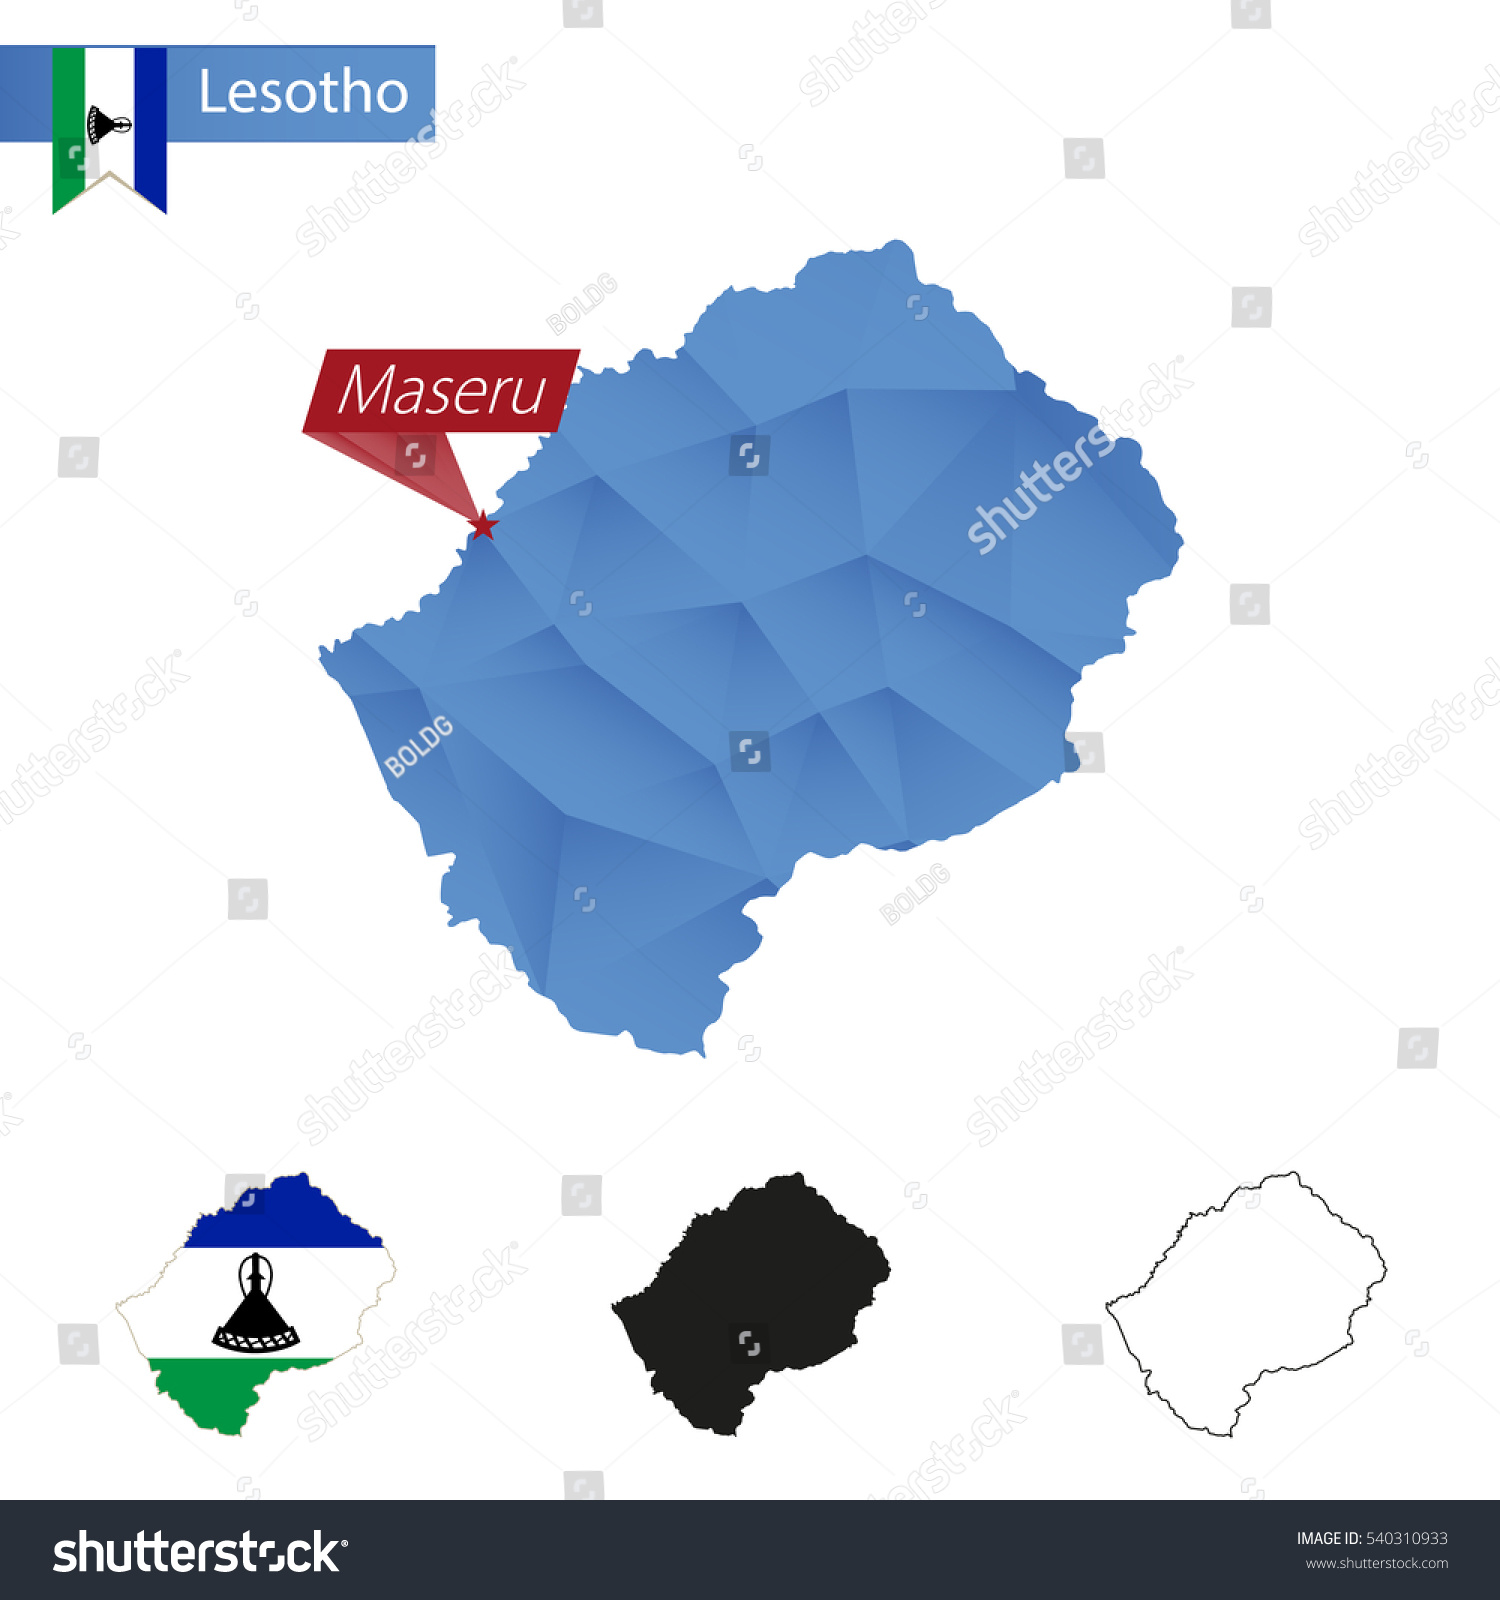 Lesotho Blue Low Poly Map Capital Stock Illustration - Maseru map